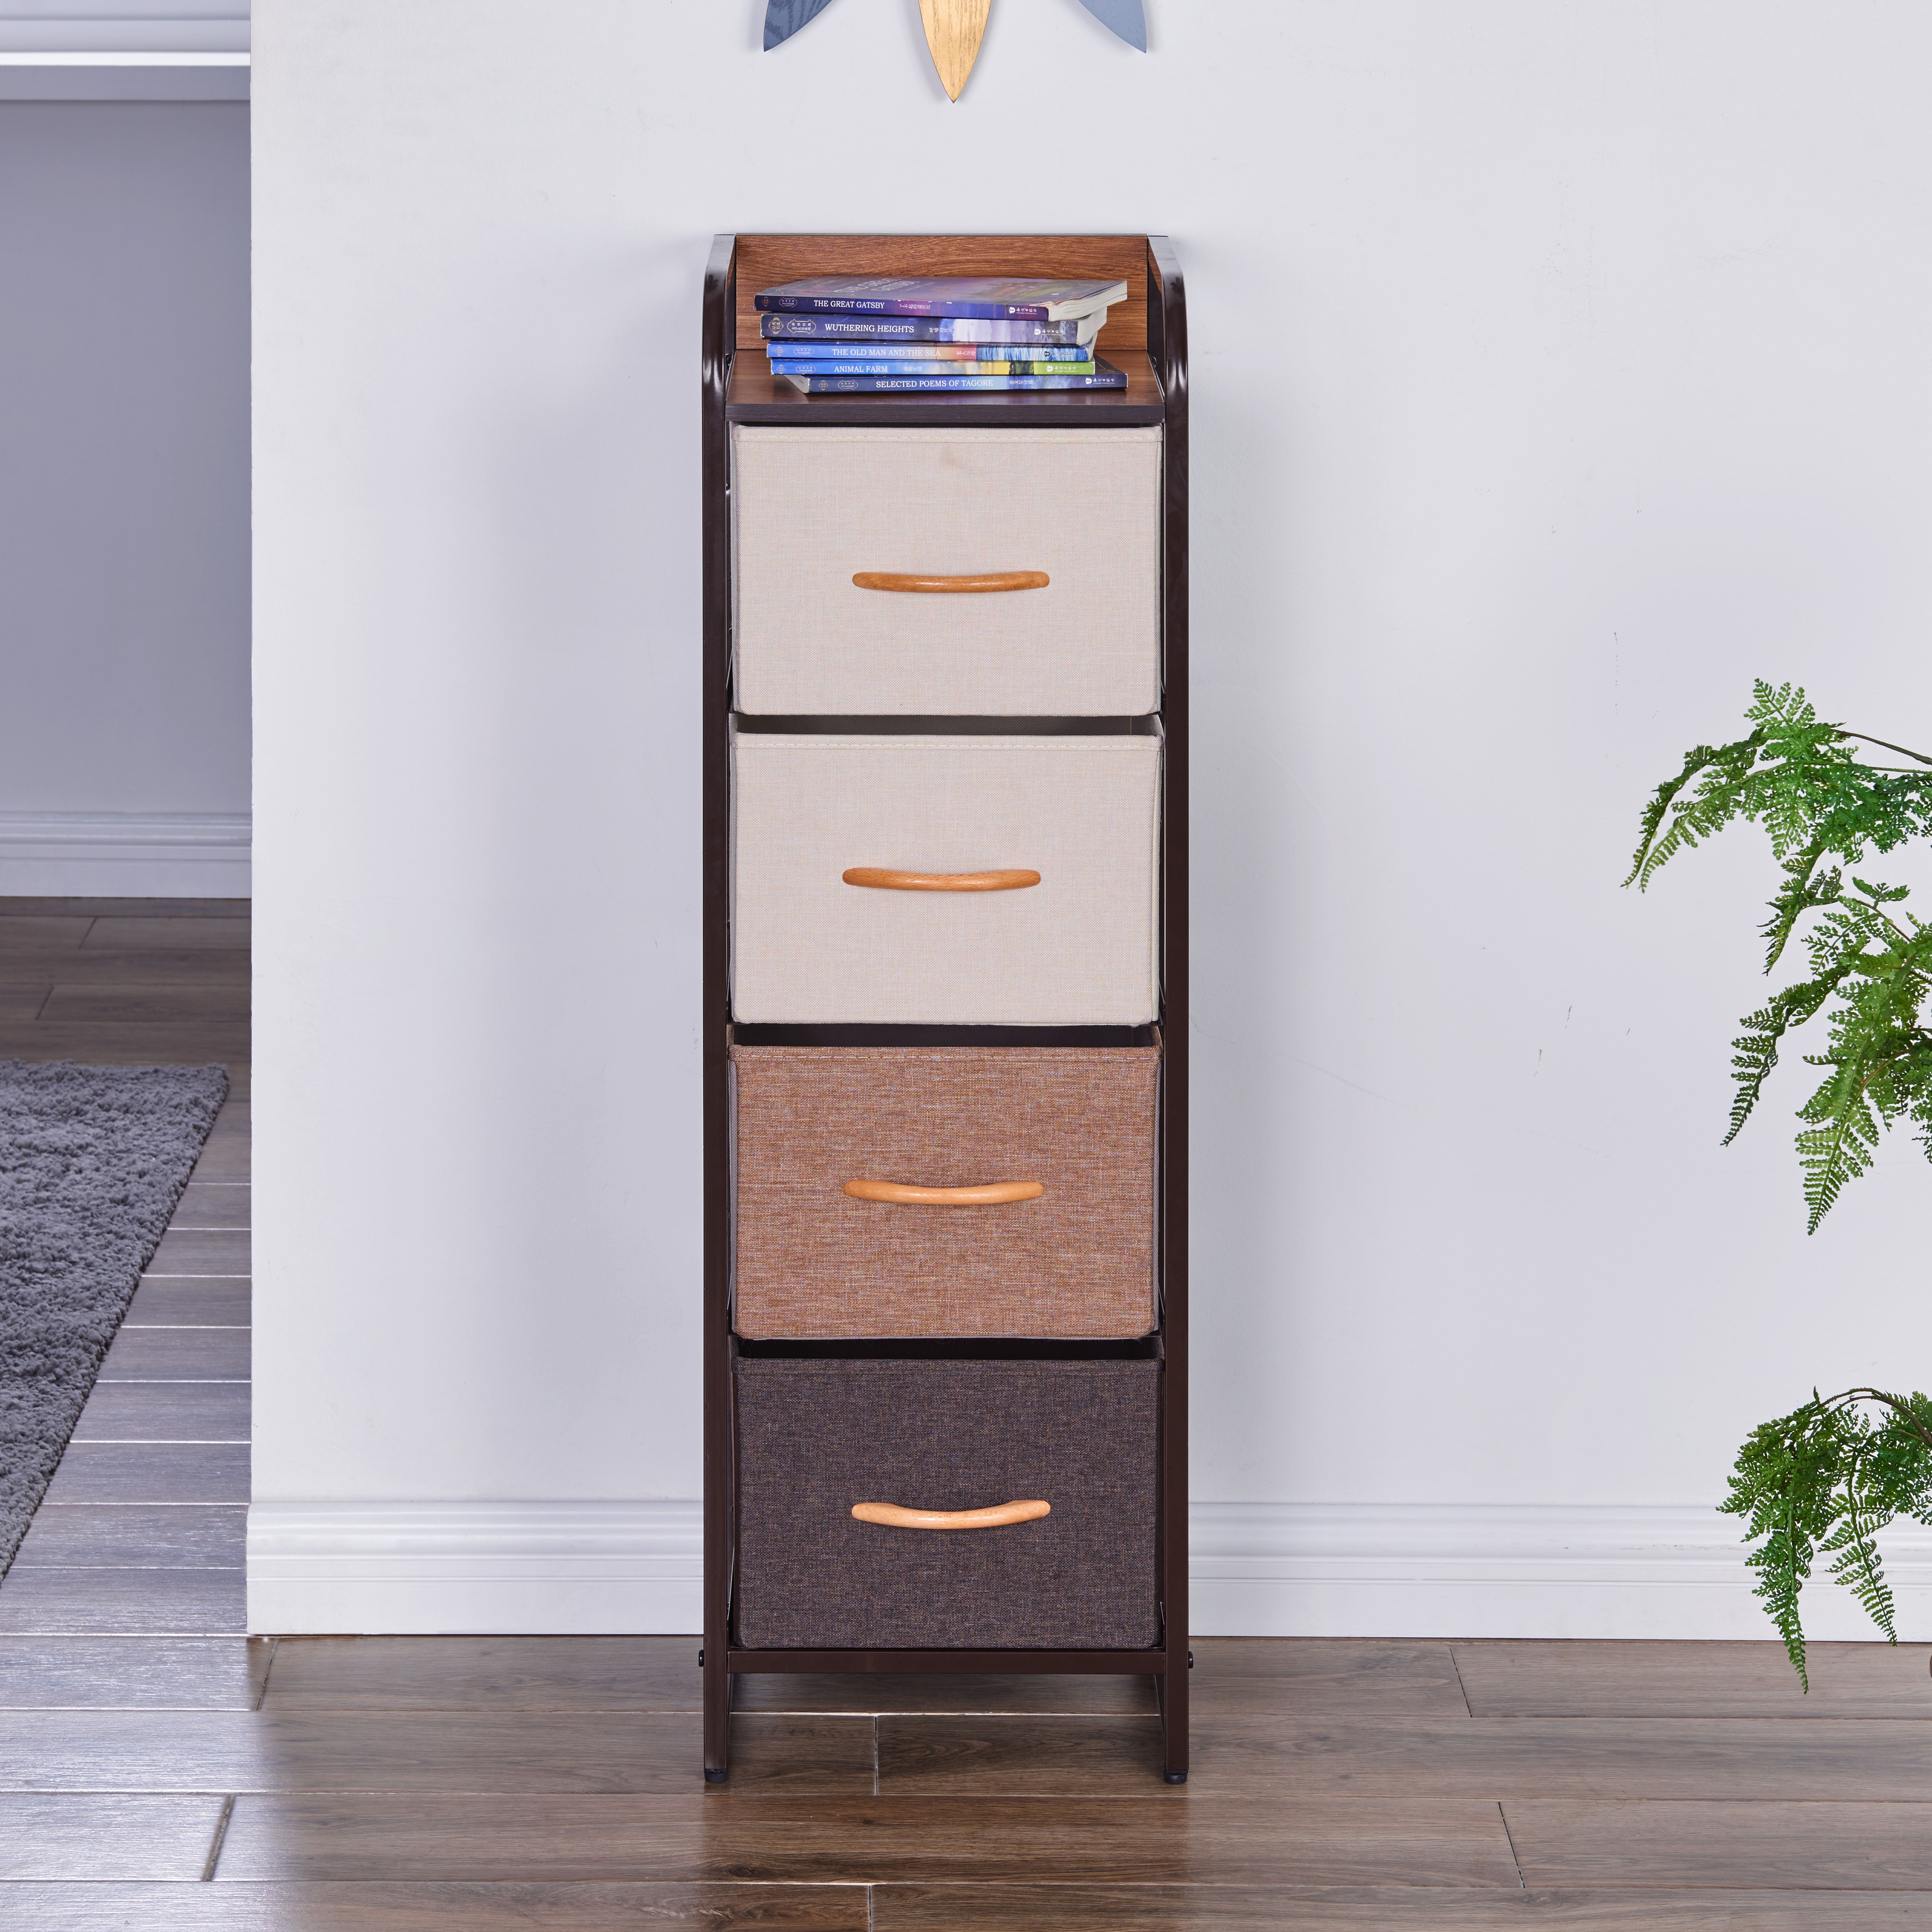 Decorative Modern Tall And Narrow Dresser Chest Storage Tower With 4 Fabric Drawers Danya B In 2021 Narrow Dresser Fabric Drawers Storage Towers [ 6187 x 6187 Pixel ]